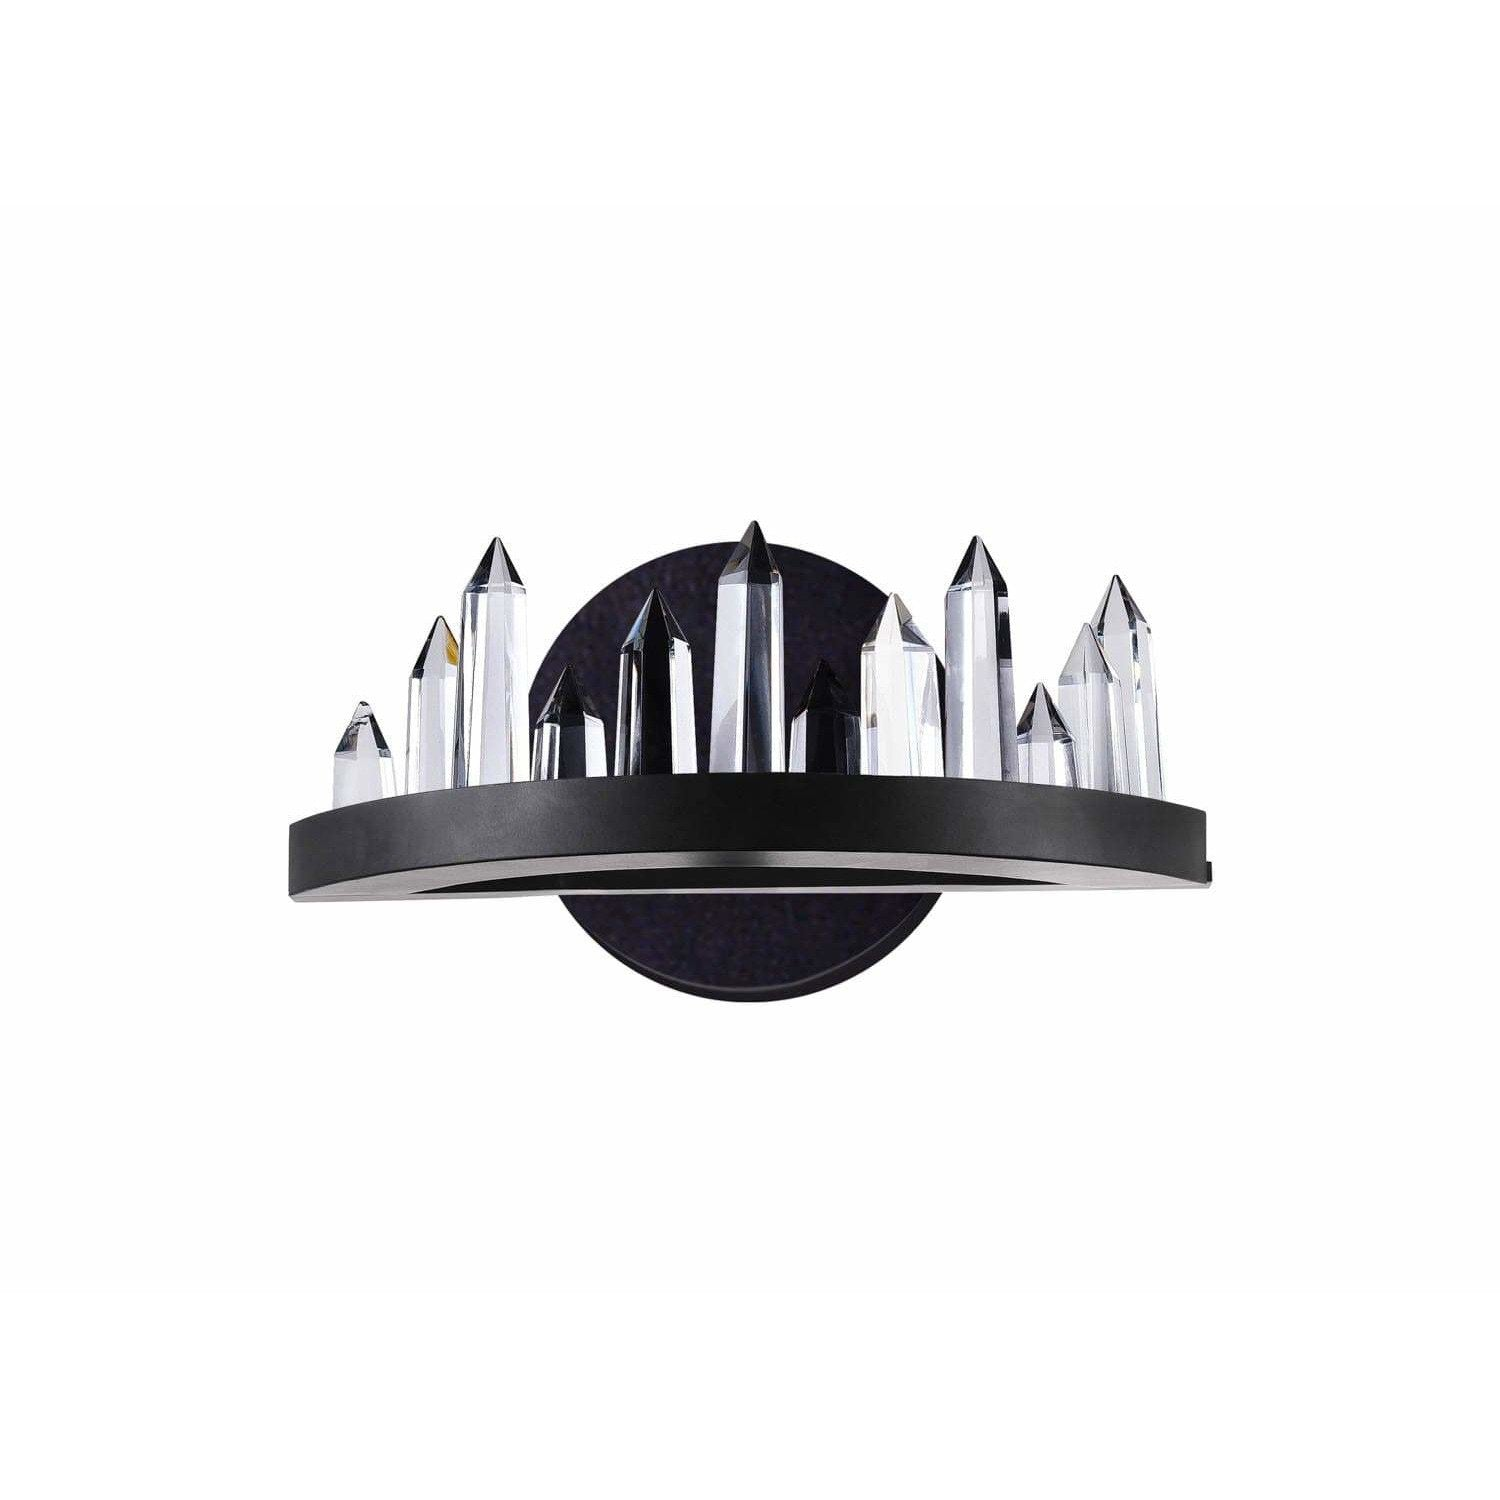 CWI Lighting Wall Sconces Black / K9 Clear Juliette LED Wall Sconce with Black Finish by CWI Lighting 1043W12-101